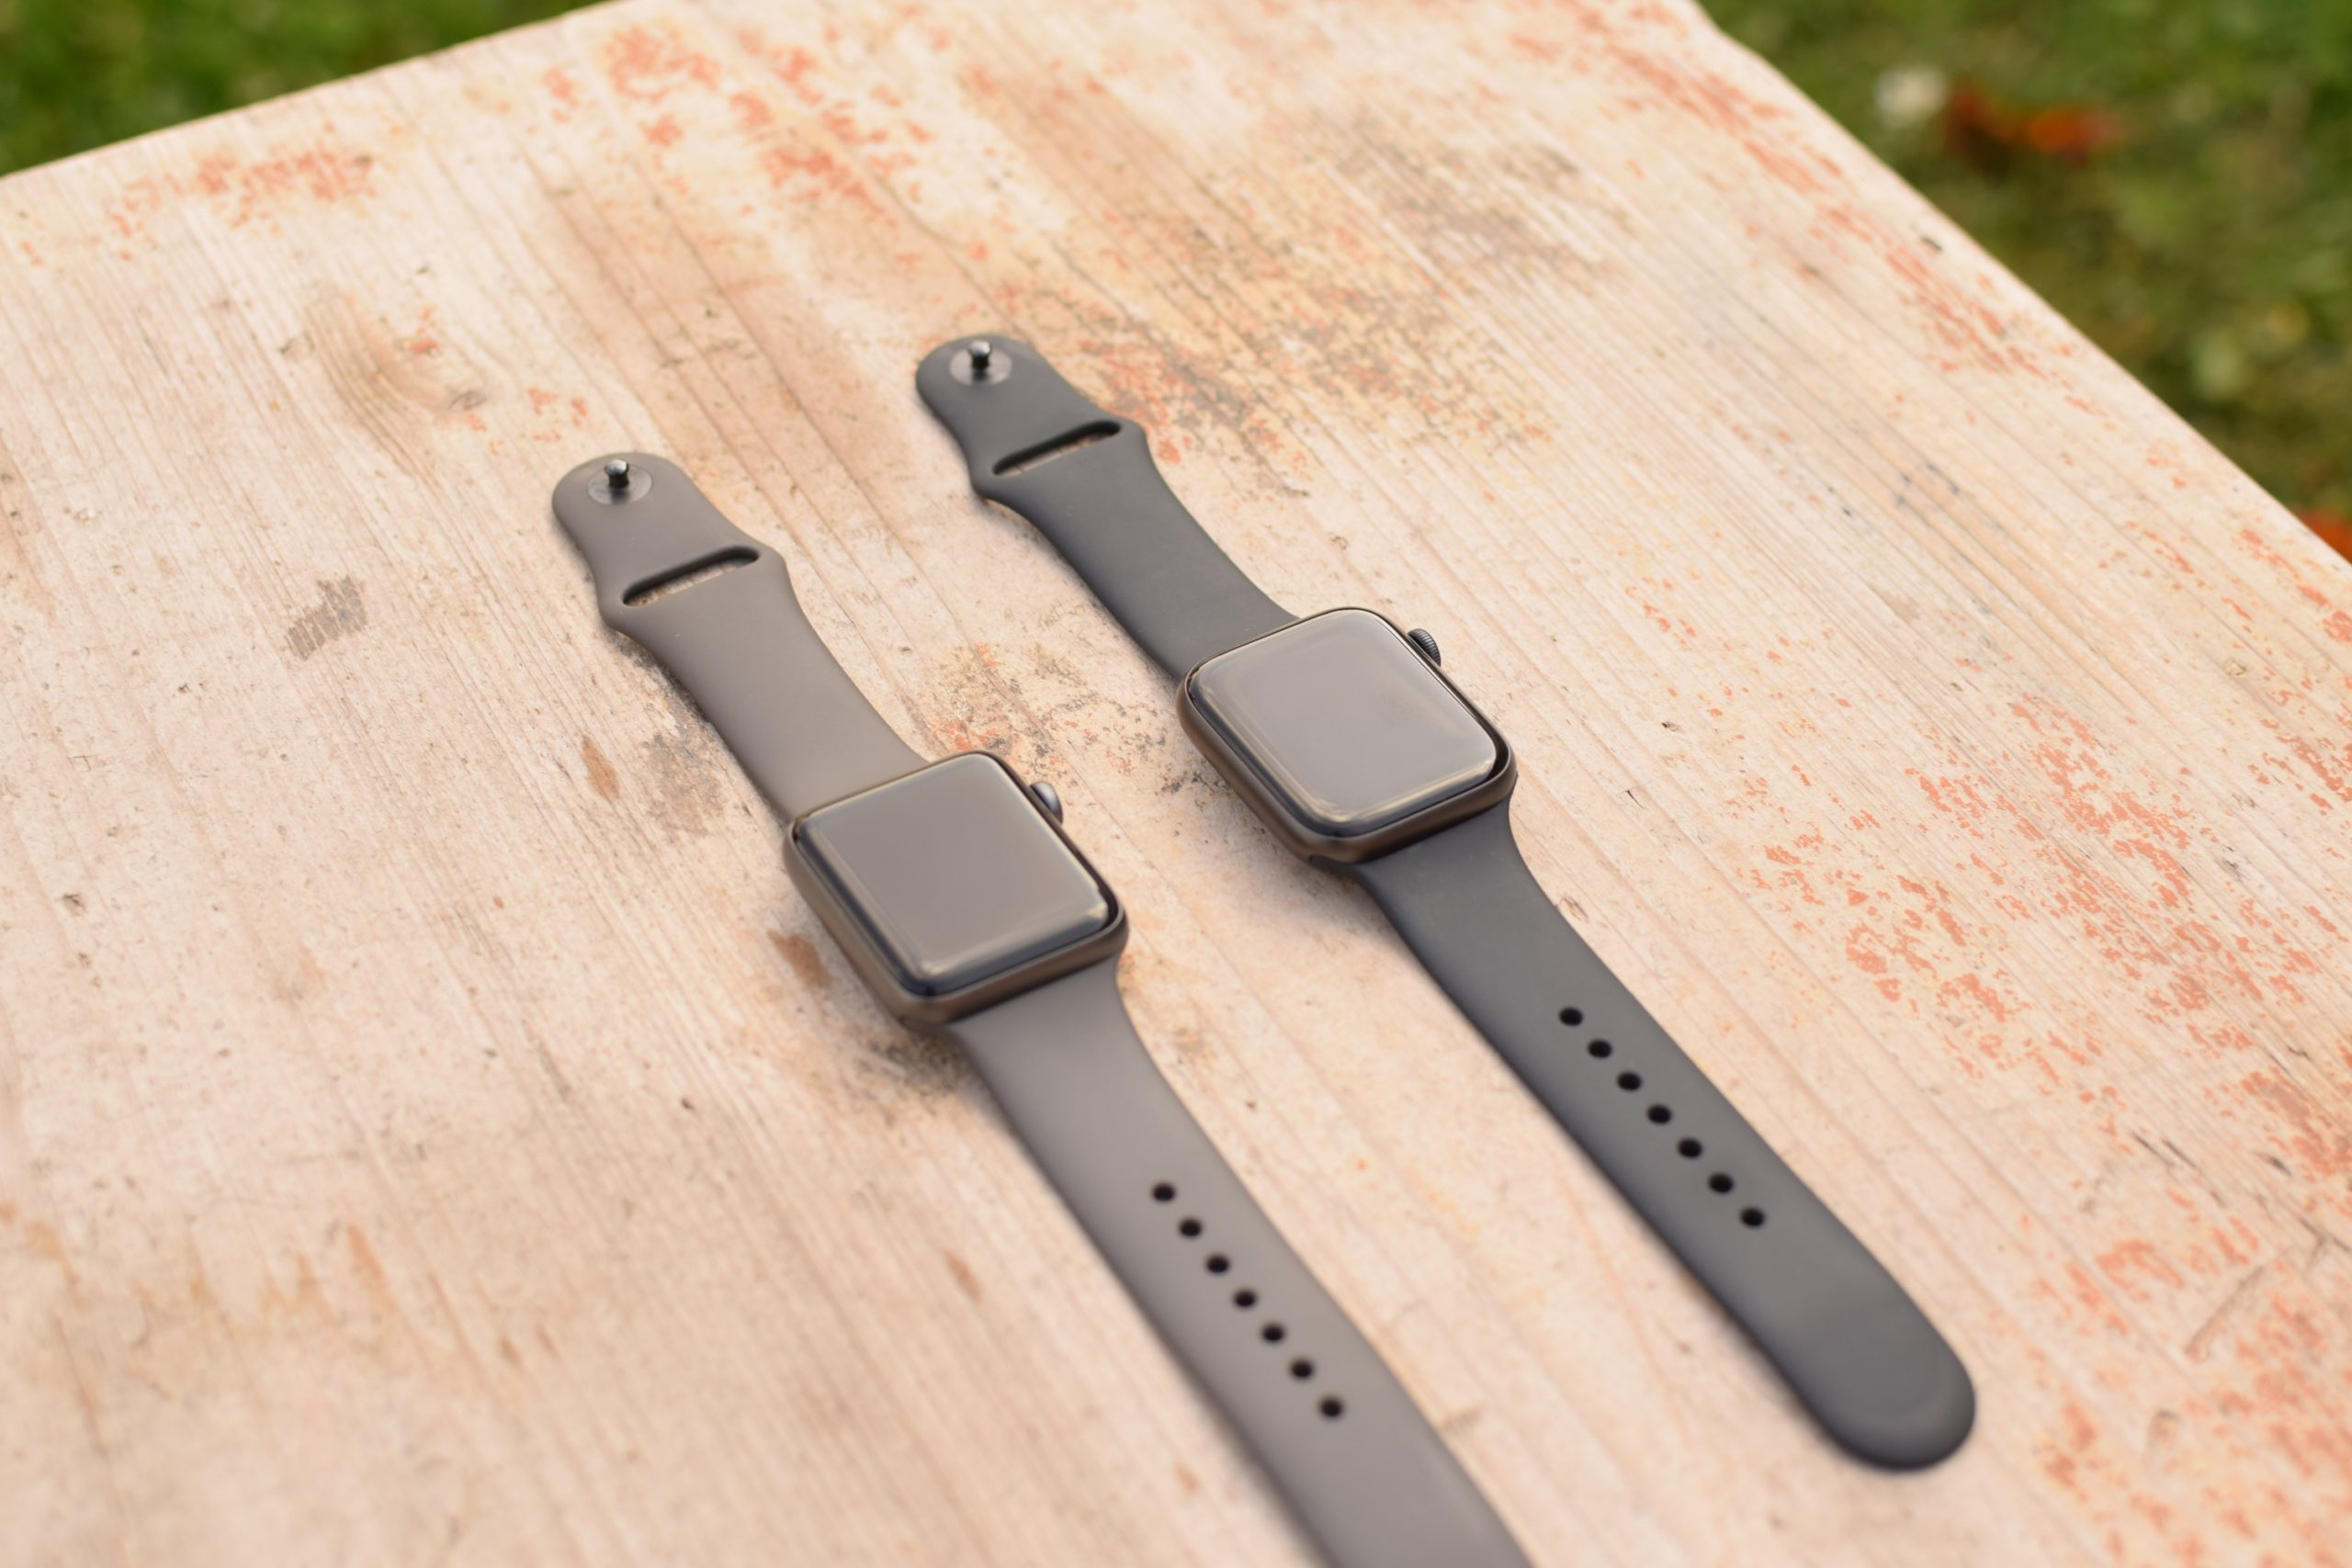 Comparison of Apple Watch Series 3 and Series 5